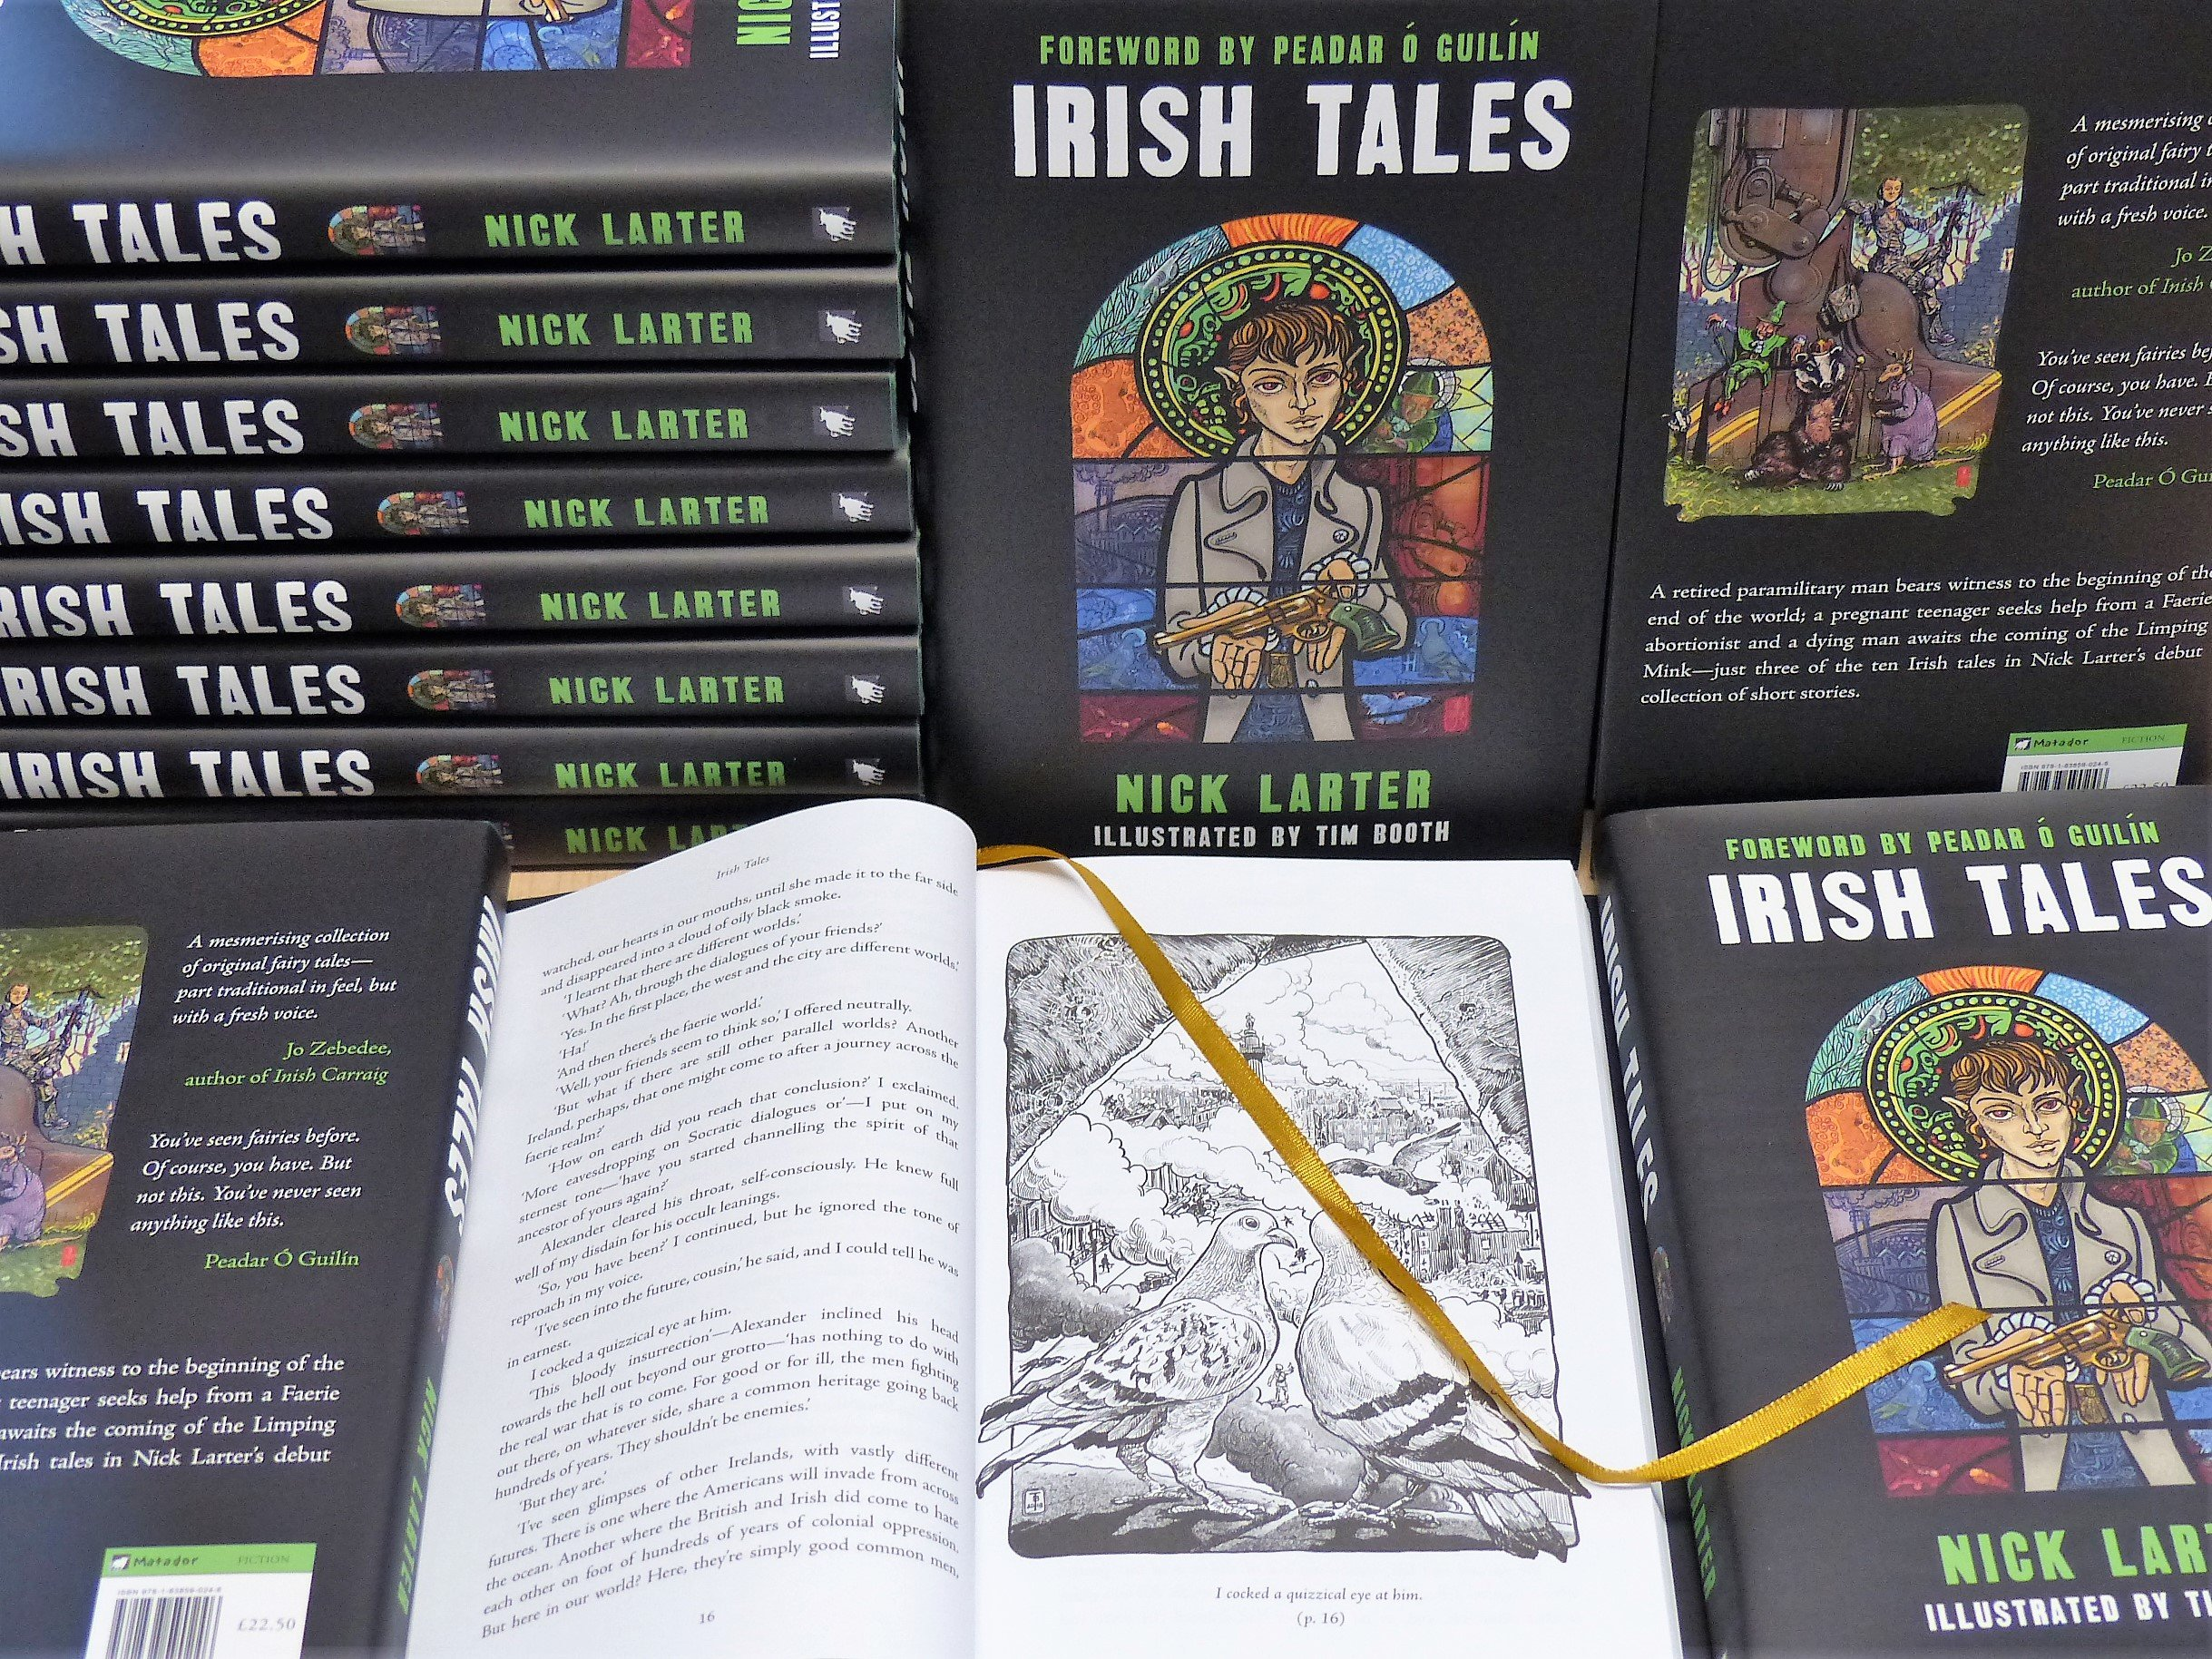 Clare writer Nick Larter on his new collection Irish Tales - Signed copies available now!